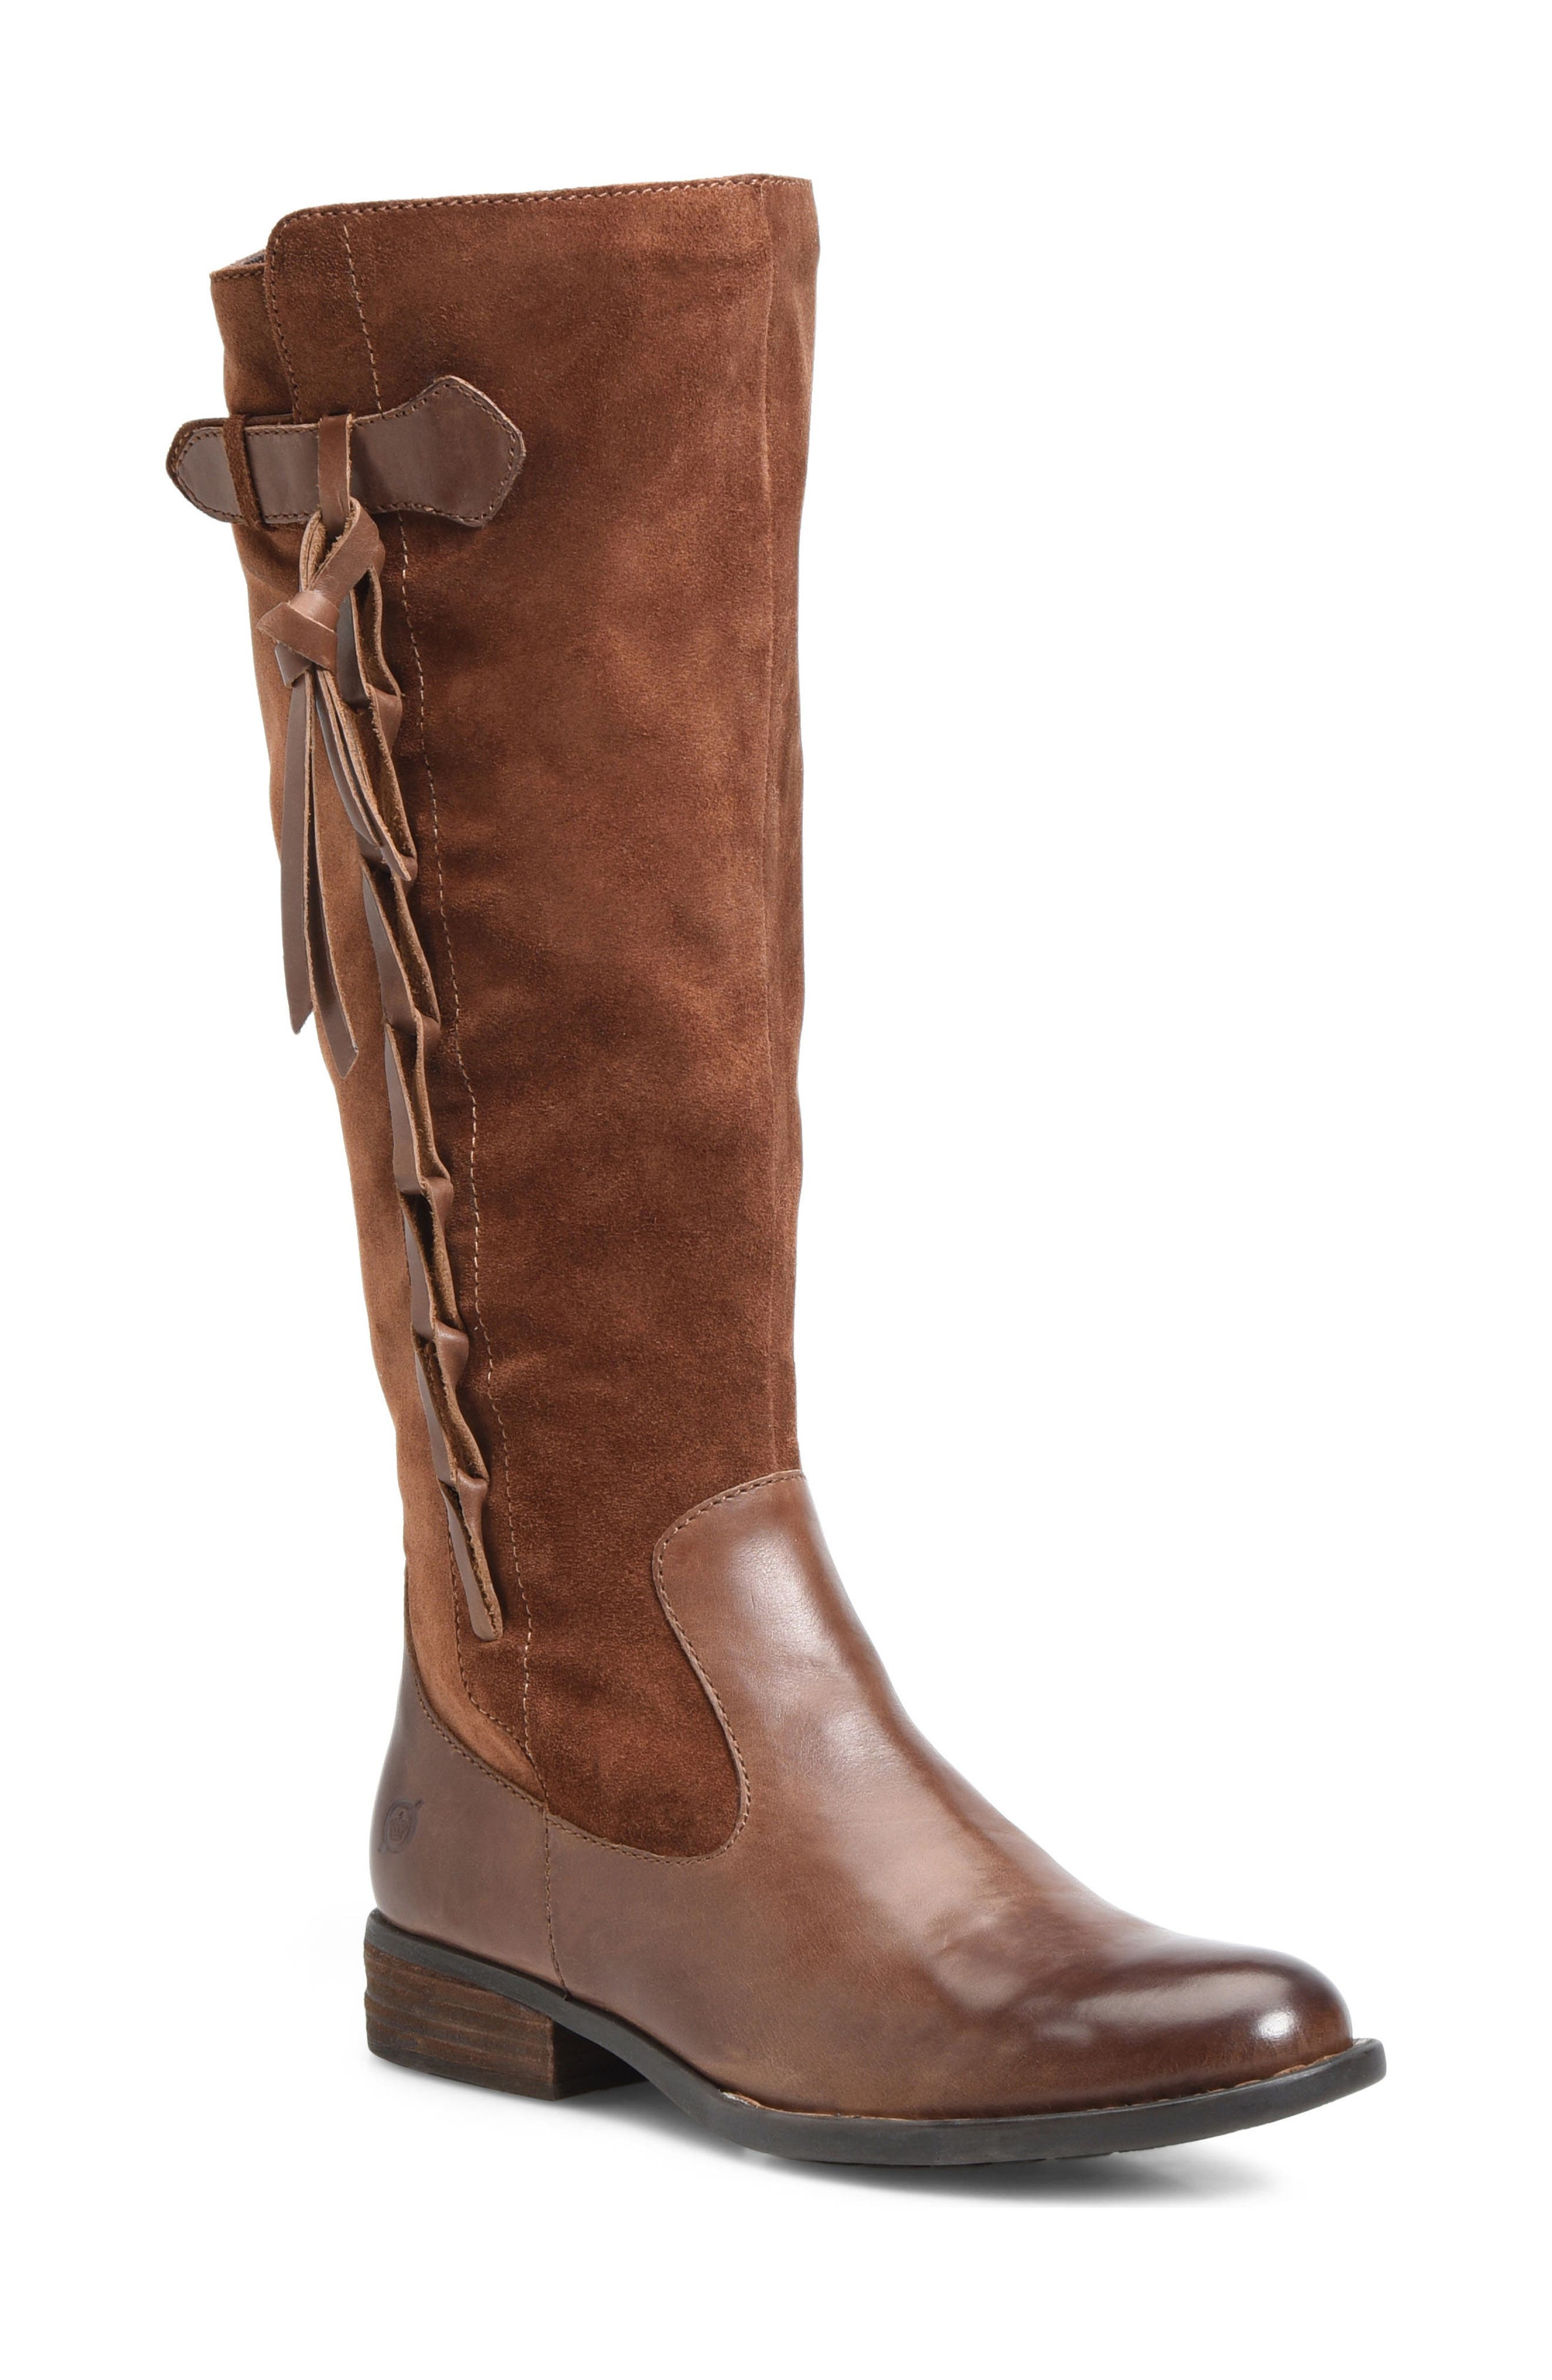 Cook Knee High Boot,                         Main,                         color, Brown/ Rust Combo